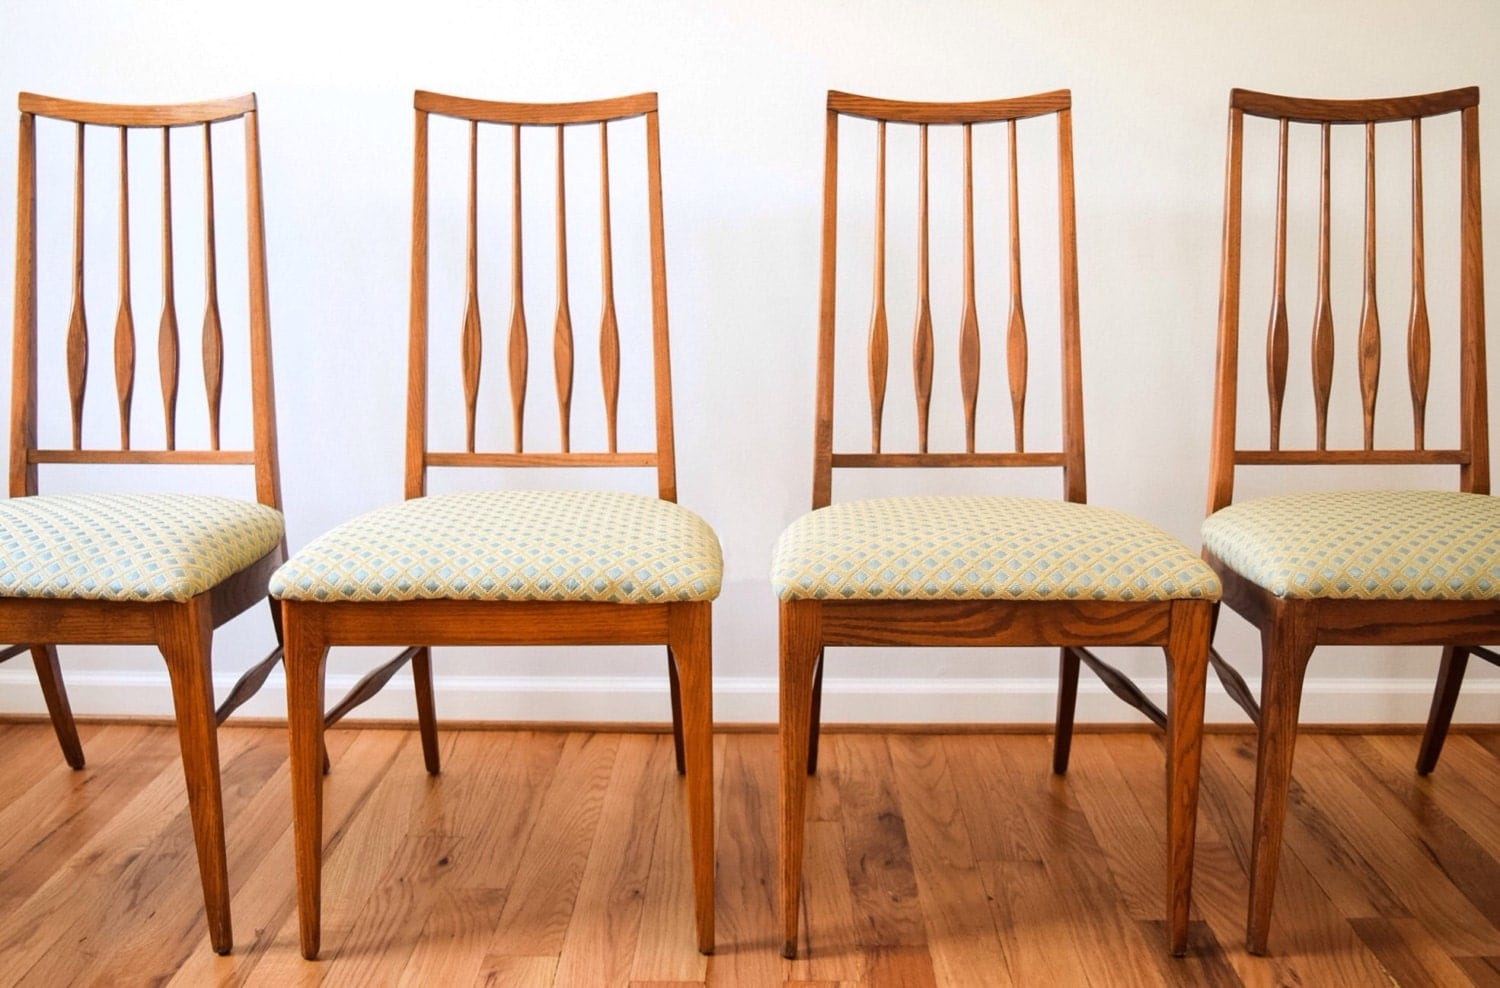 Mid century dining chairs modern dining chairs by littlecows Mid century chairs